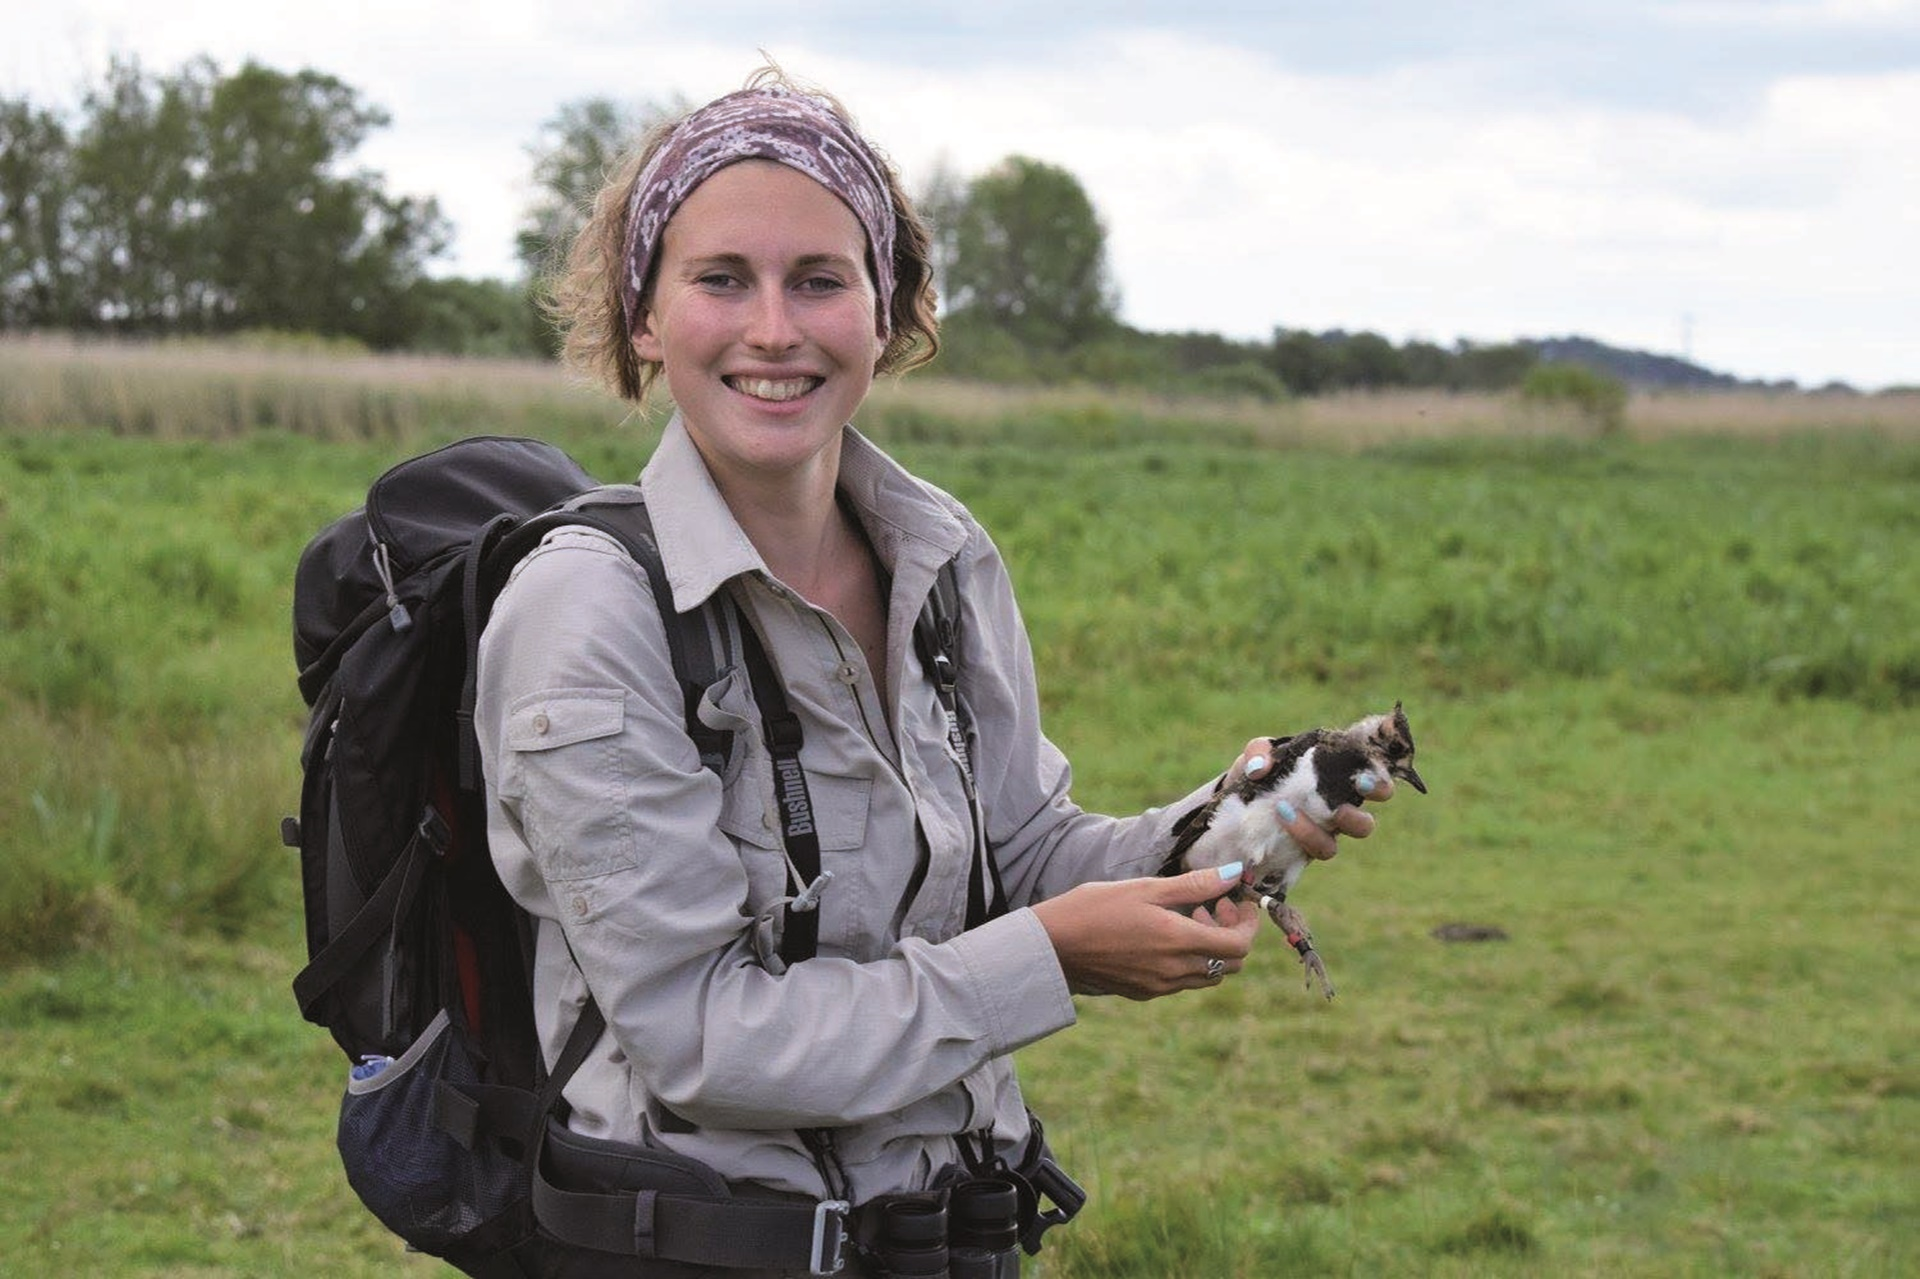 Lizzie Grayshon has been monitoring lapwing in the Avon Valley